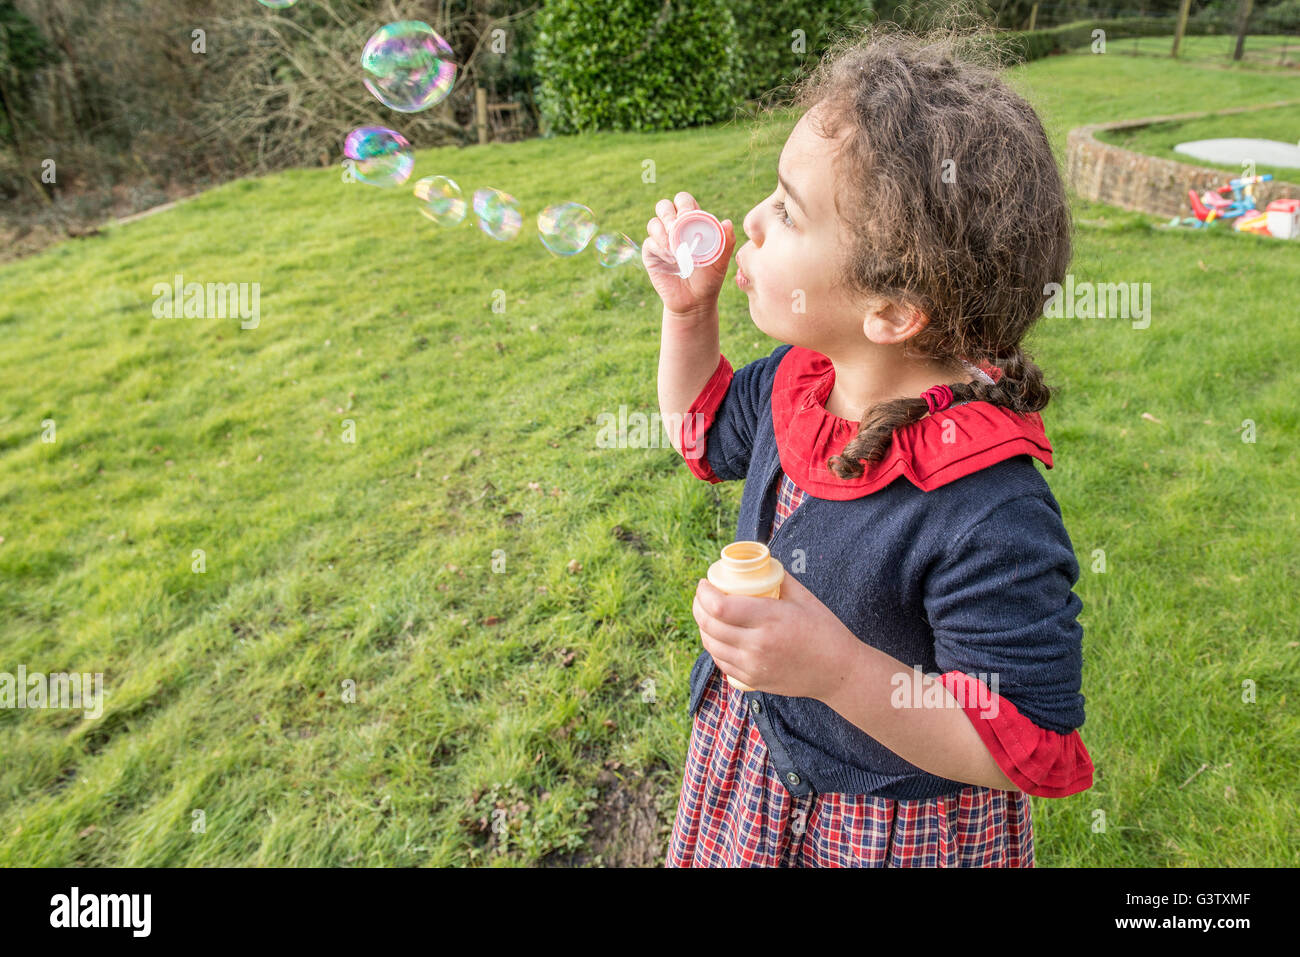 A six year old girl blowing bubbles in a garden. - Stock Image